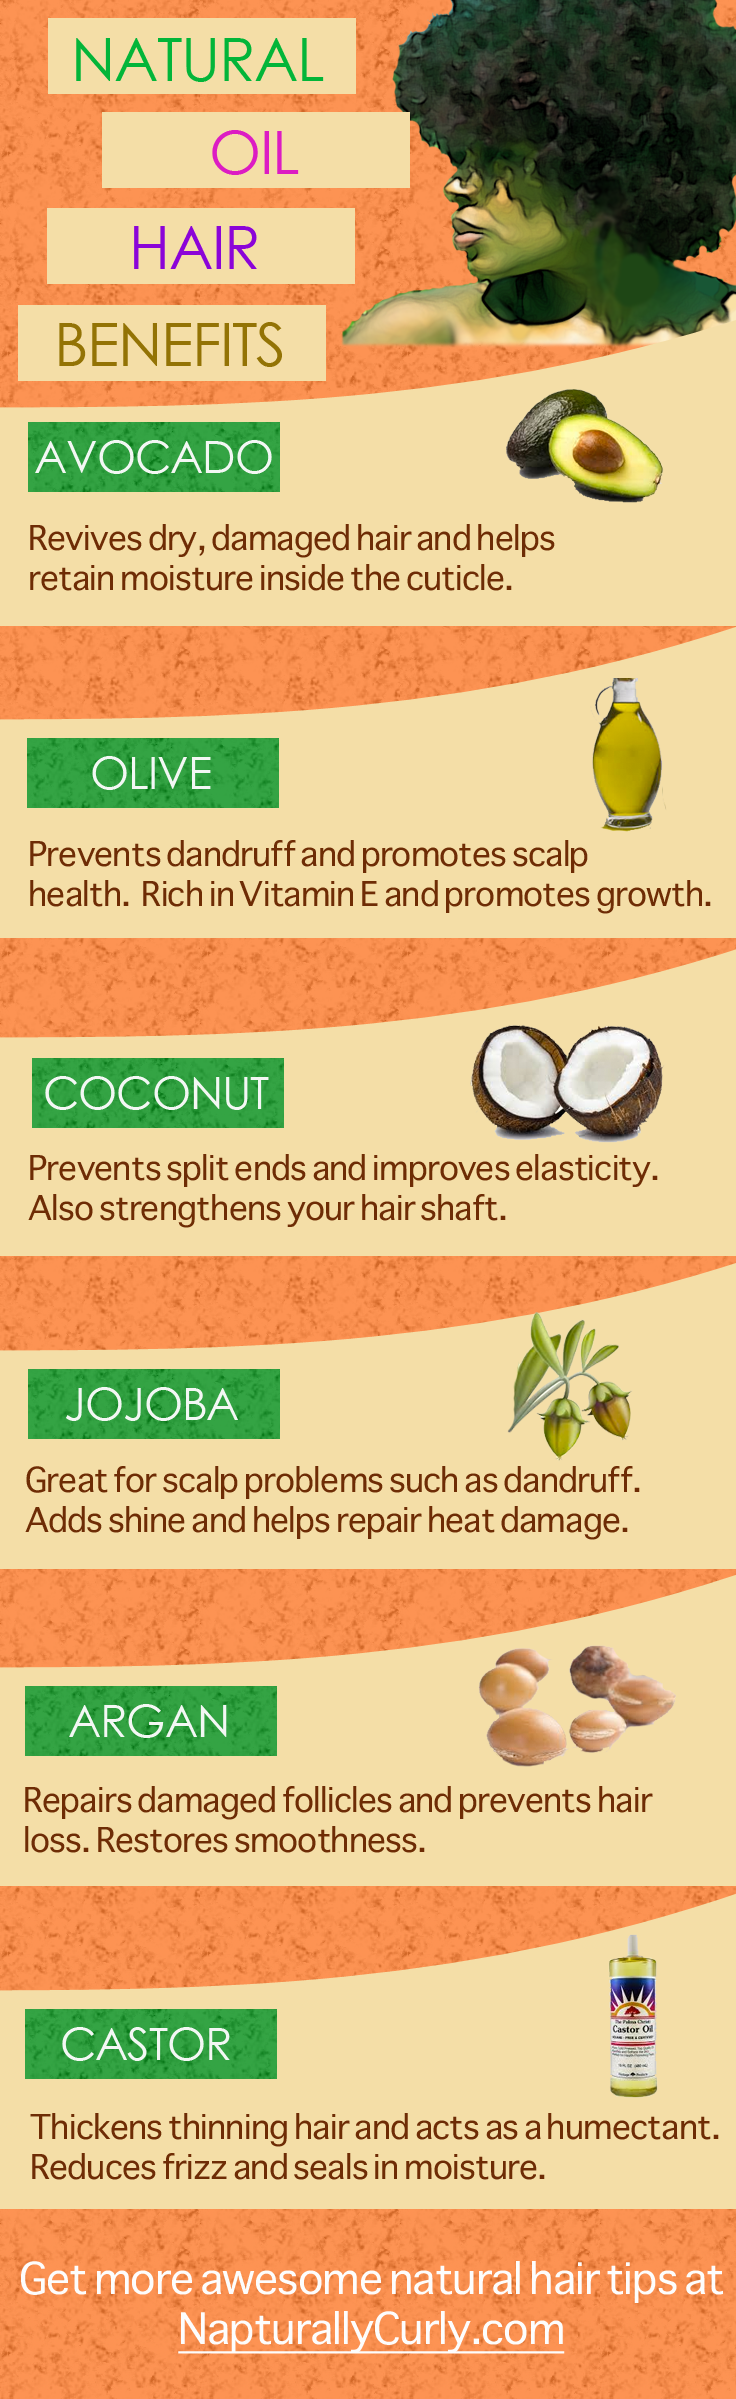 Specific Benefits Of Each Natural Oil On Natural Hair Http Napturallycurly Com Hot Oil Treatments On Natural Hair Oils Natural Hair Styles Natural Hair Care